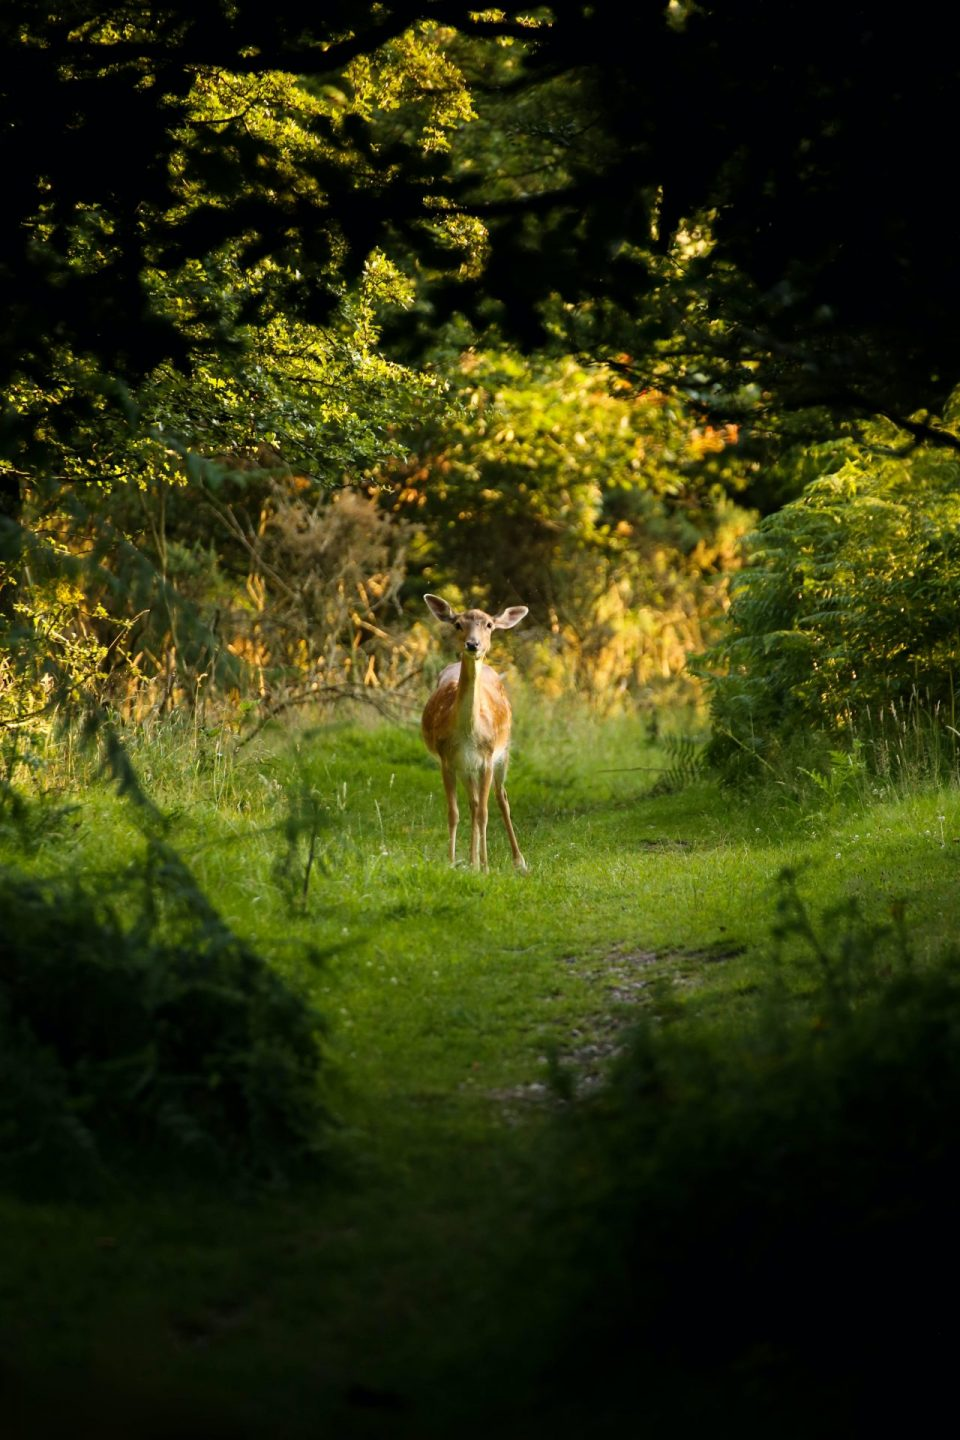 Helping vulnerable people - deer in forest